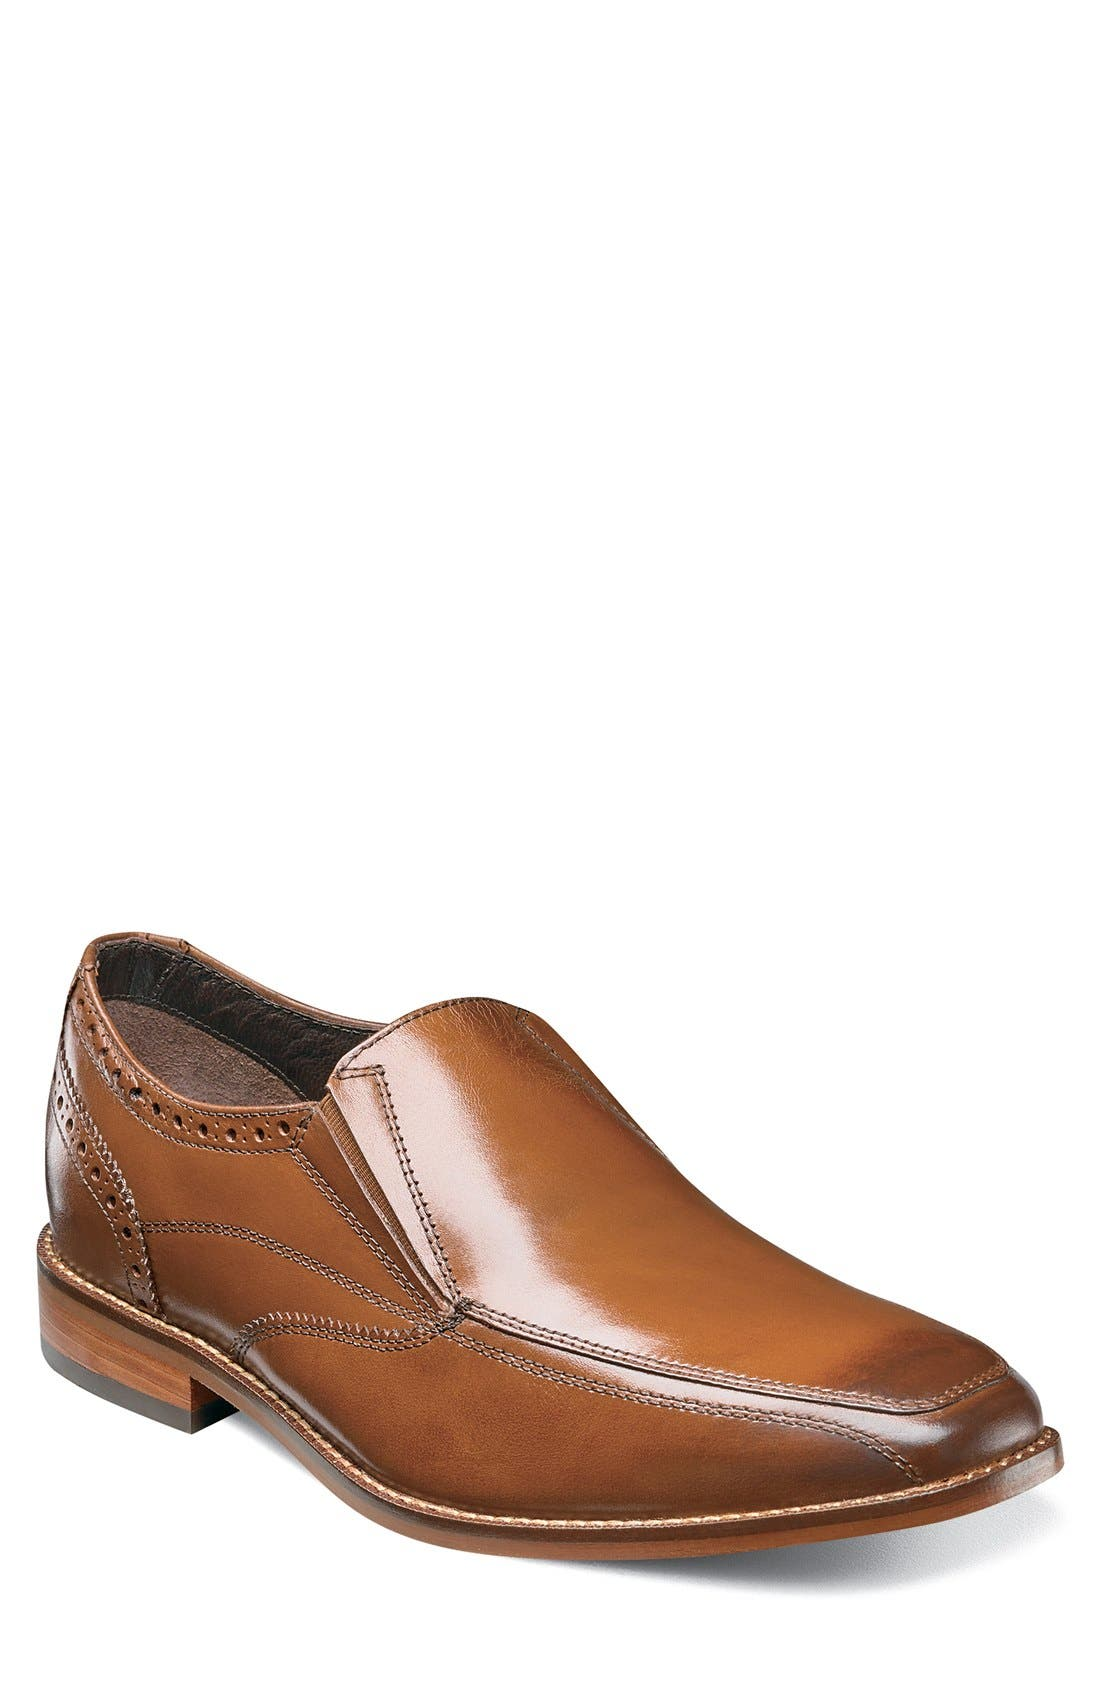 Florsheim 'Castellano' Venetian Loafer (Men)